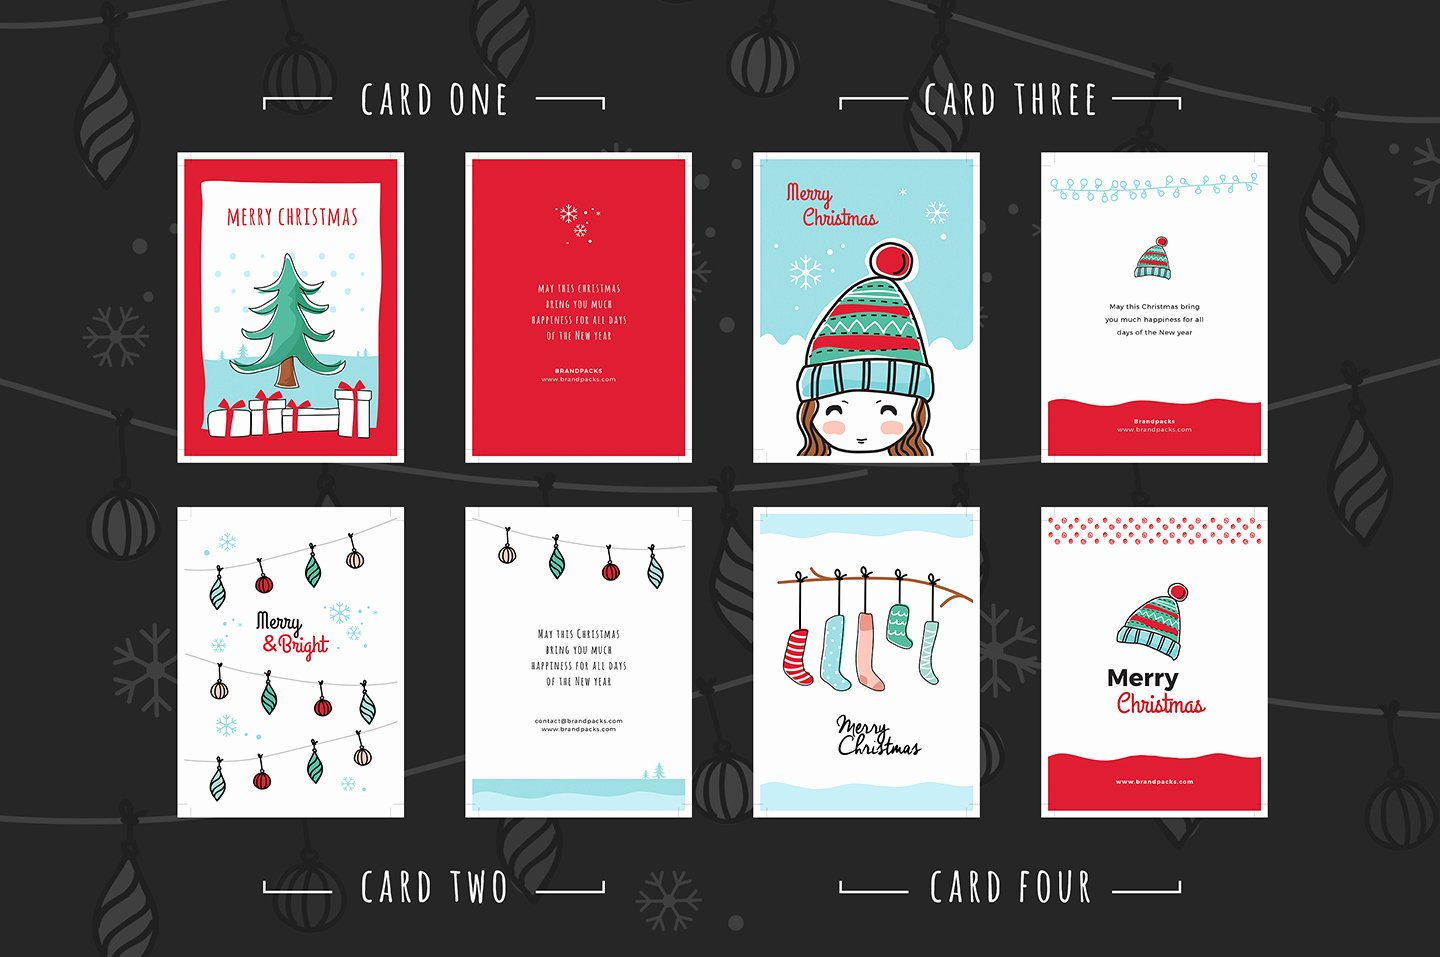 Photoshop Greeting Card Template New Free Christmas Card Templates for Shop & Illustrator